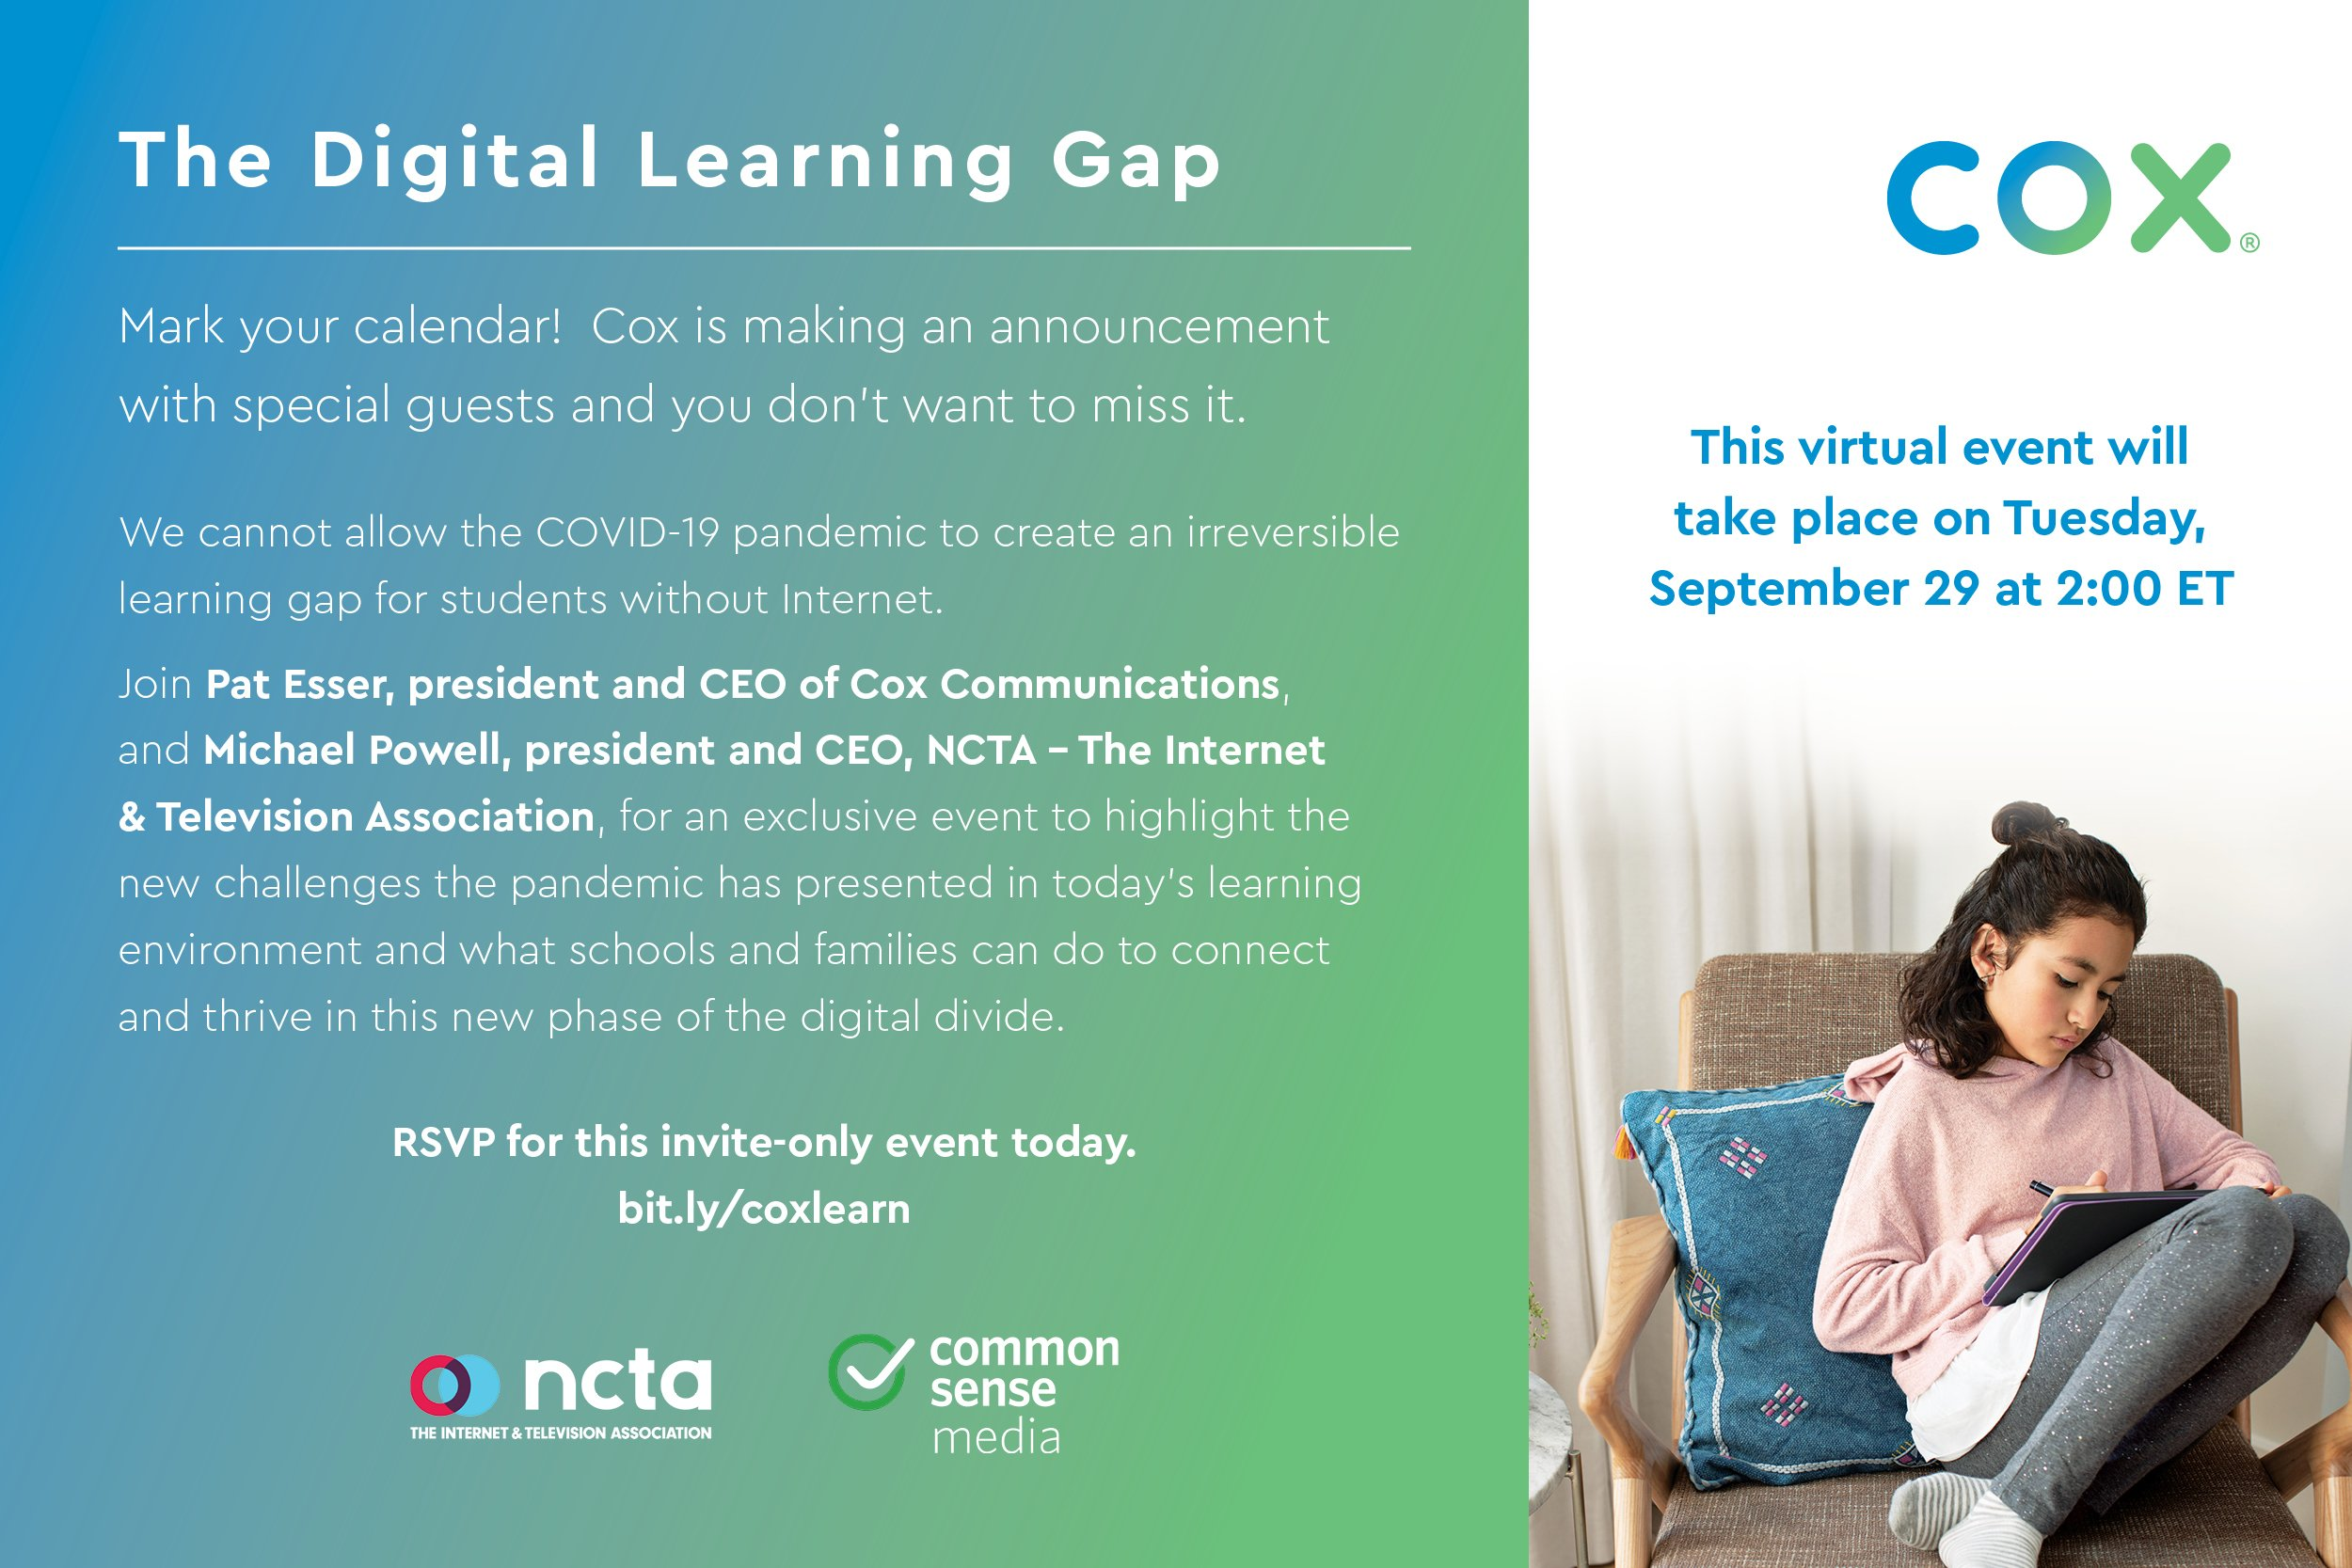 The Digital Learning Gap Press Event